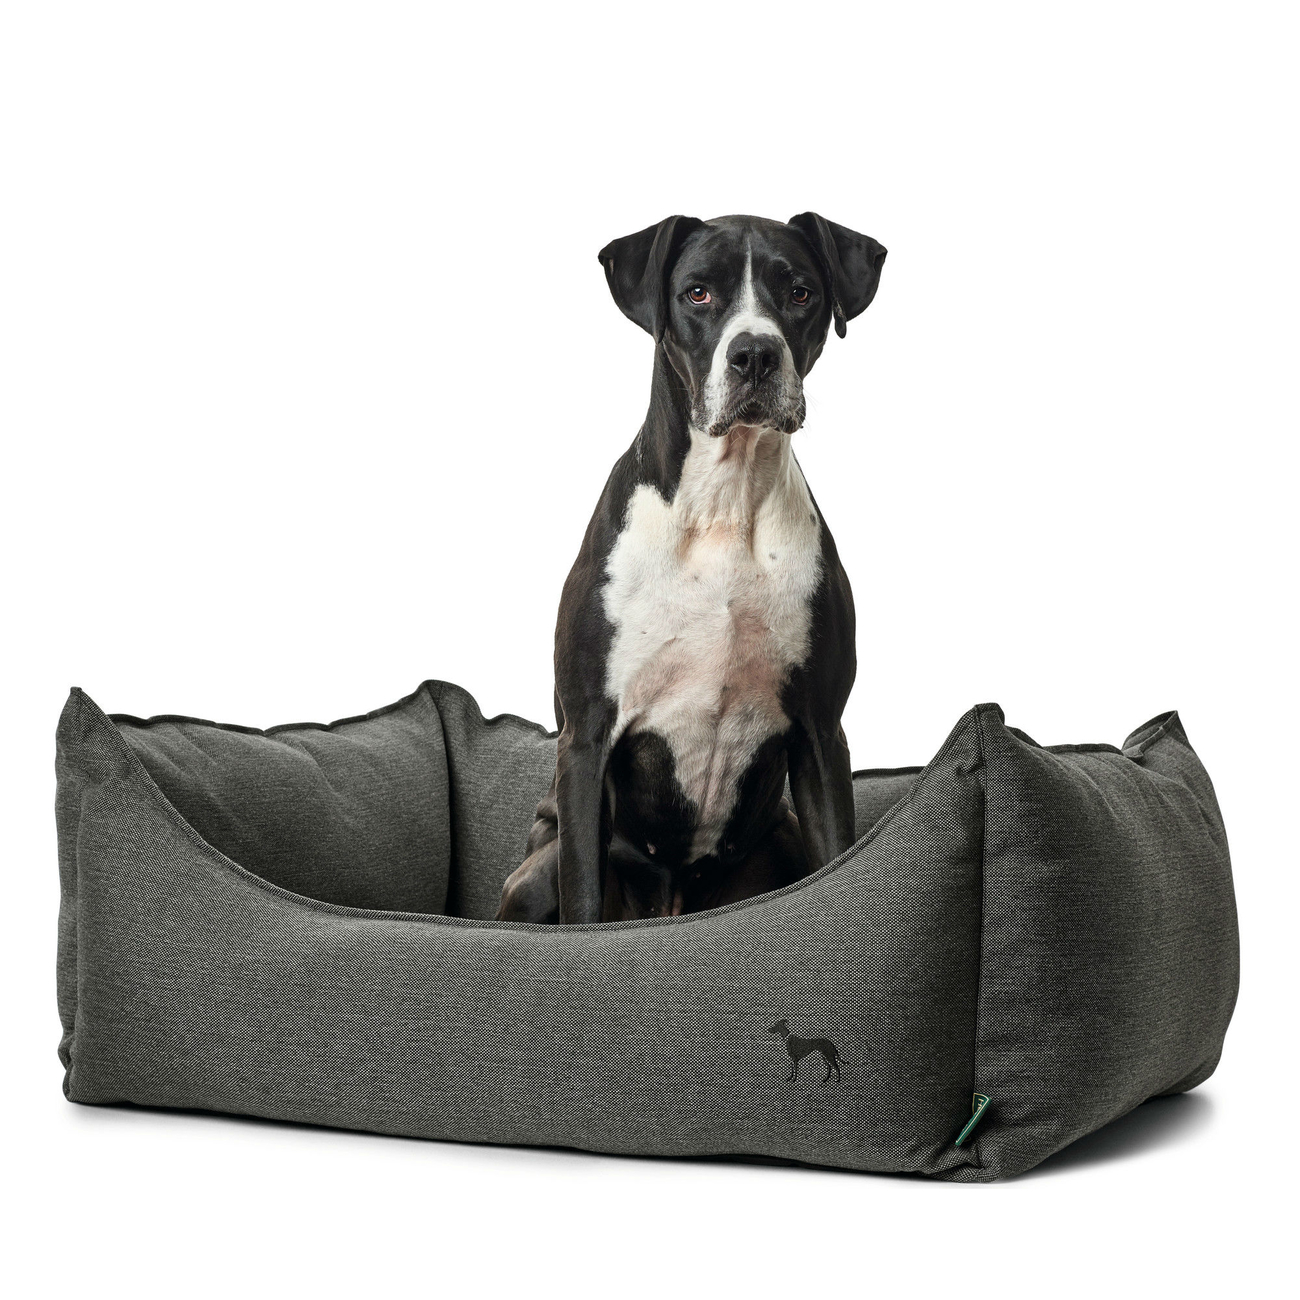 Hunter Hundesofa Livingston 60856, Bild 3